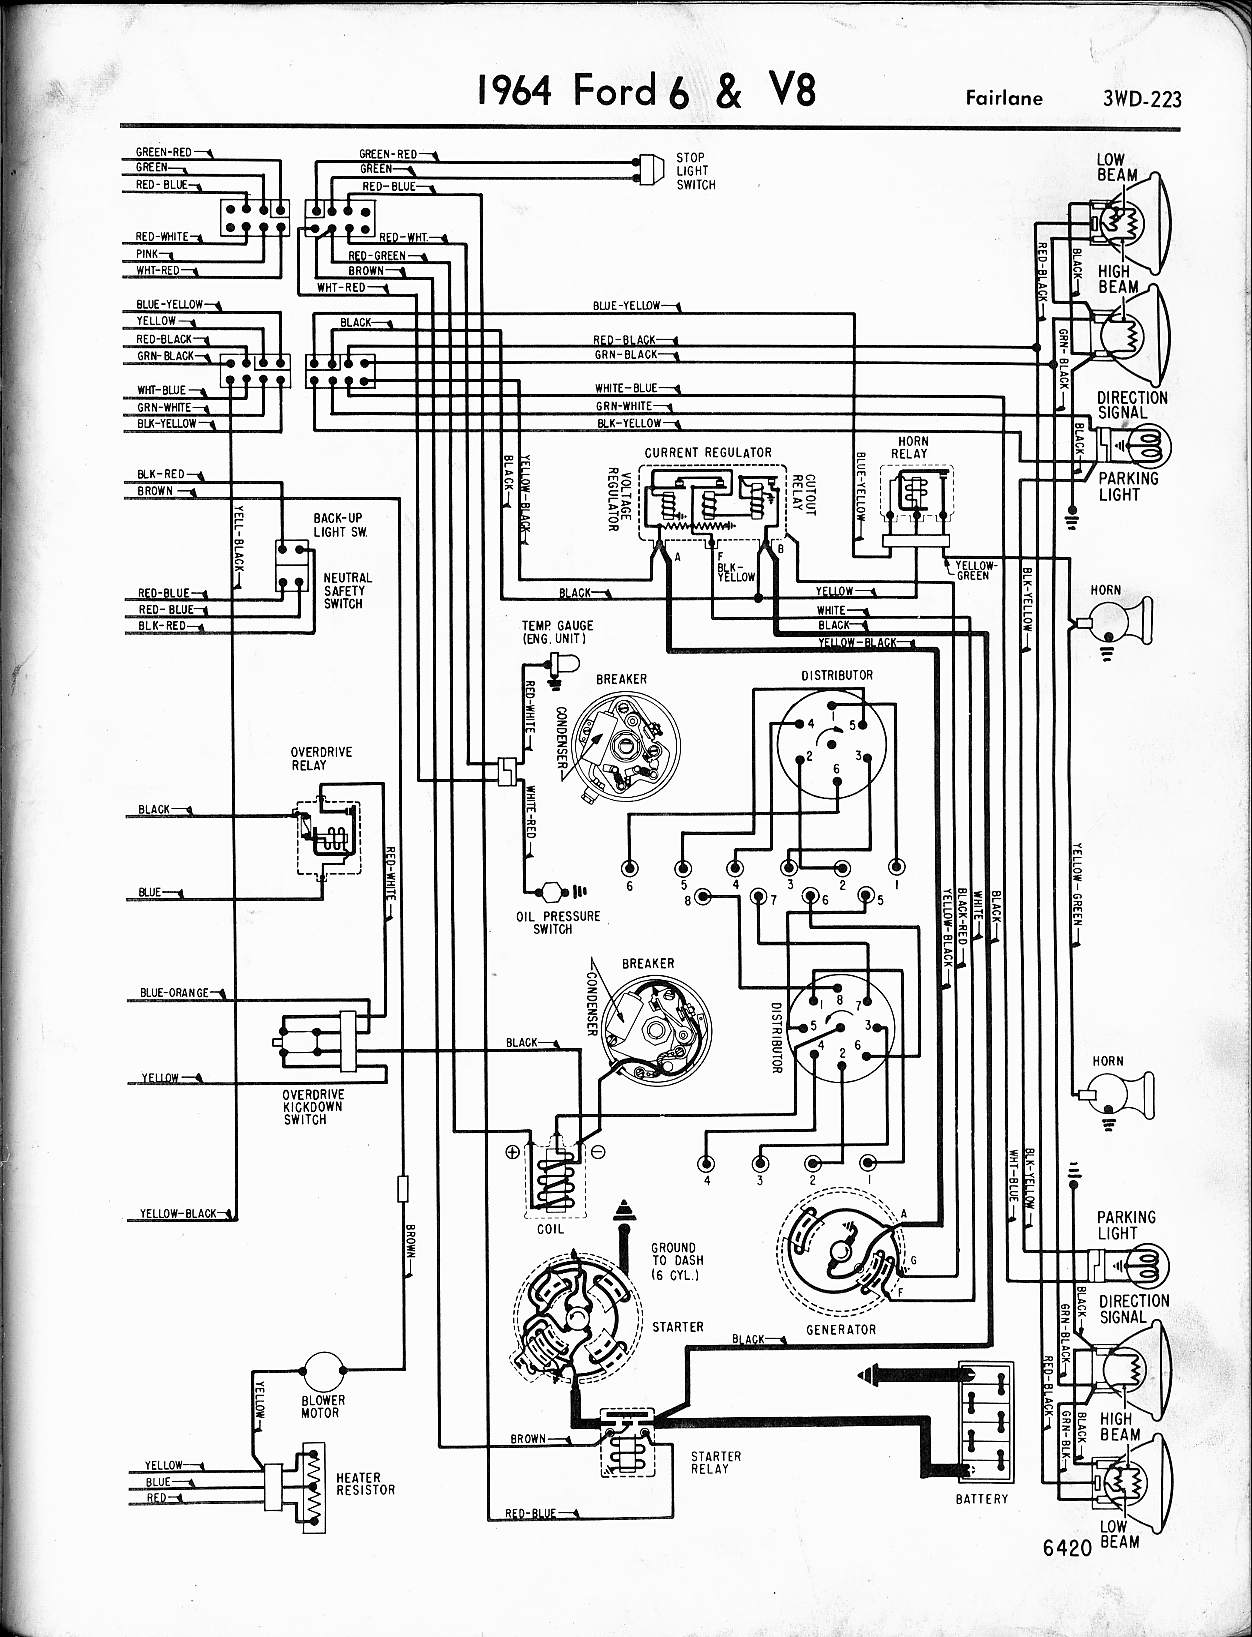 1966 ranchero wiring diagram 1966 wiring diagrams online 1964 ford wiring diagram